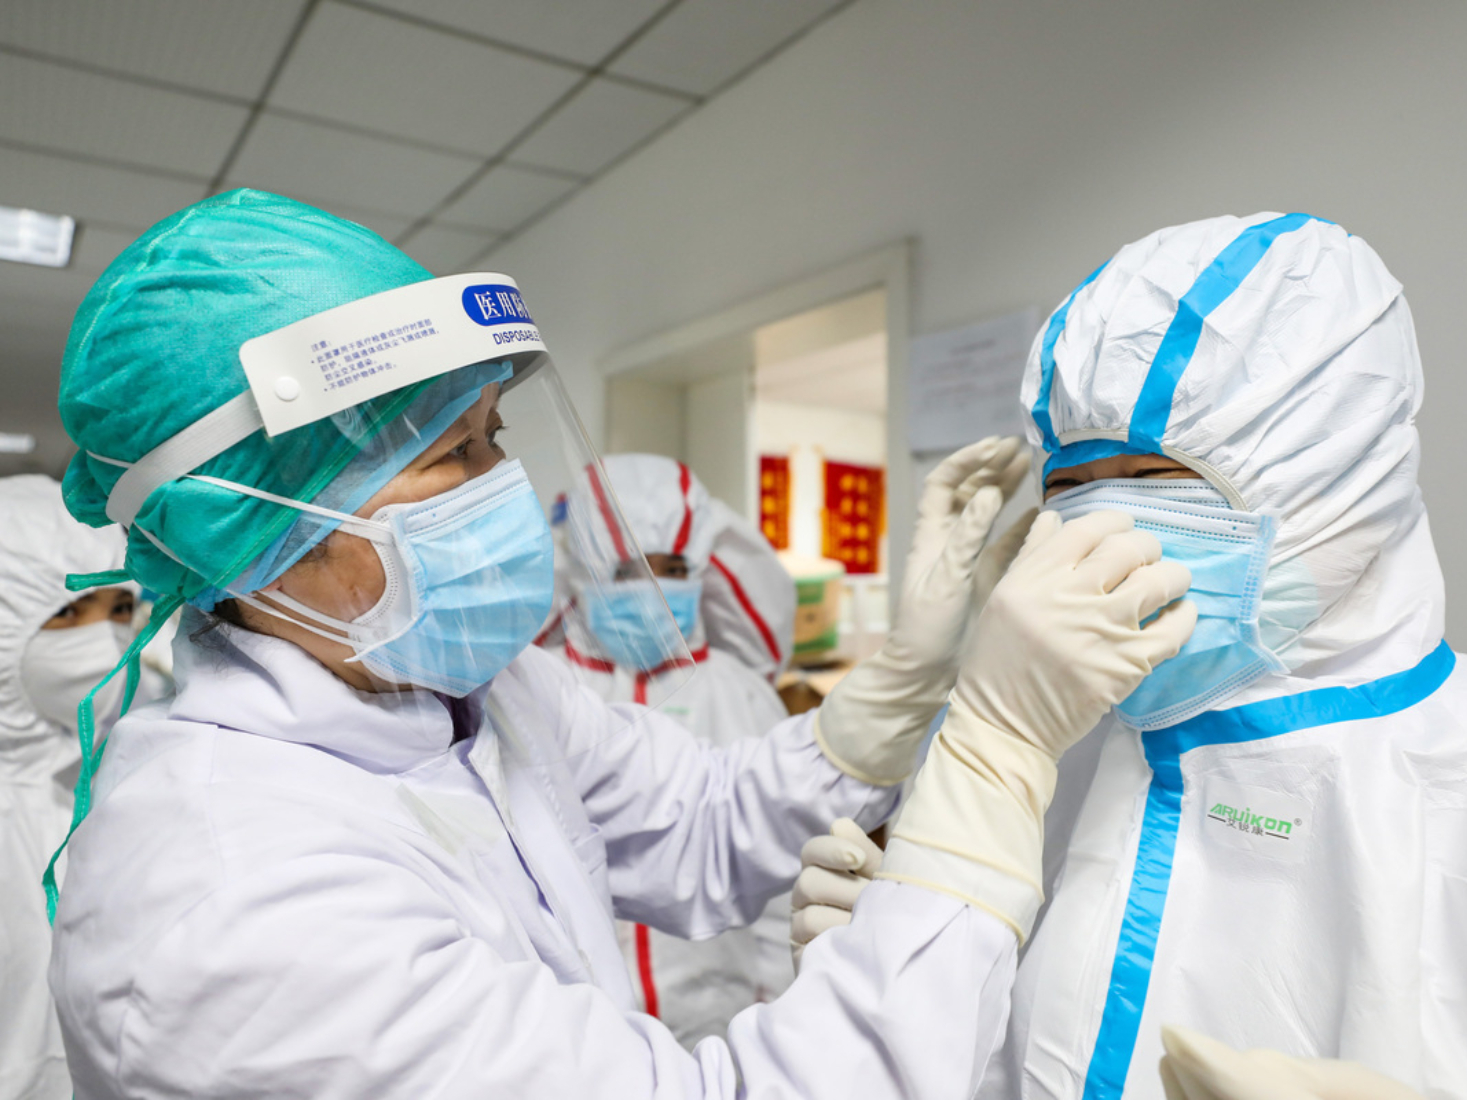 Nonlocal medical staff staying safe in Hubei